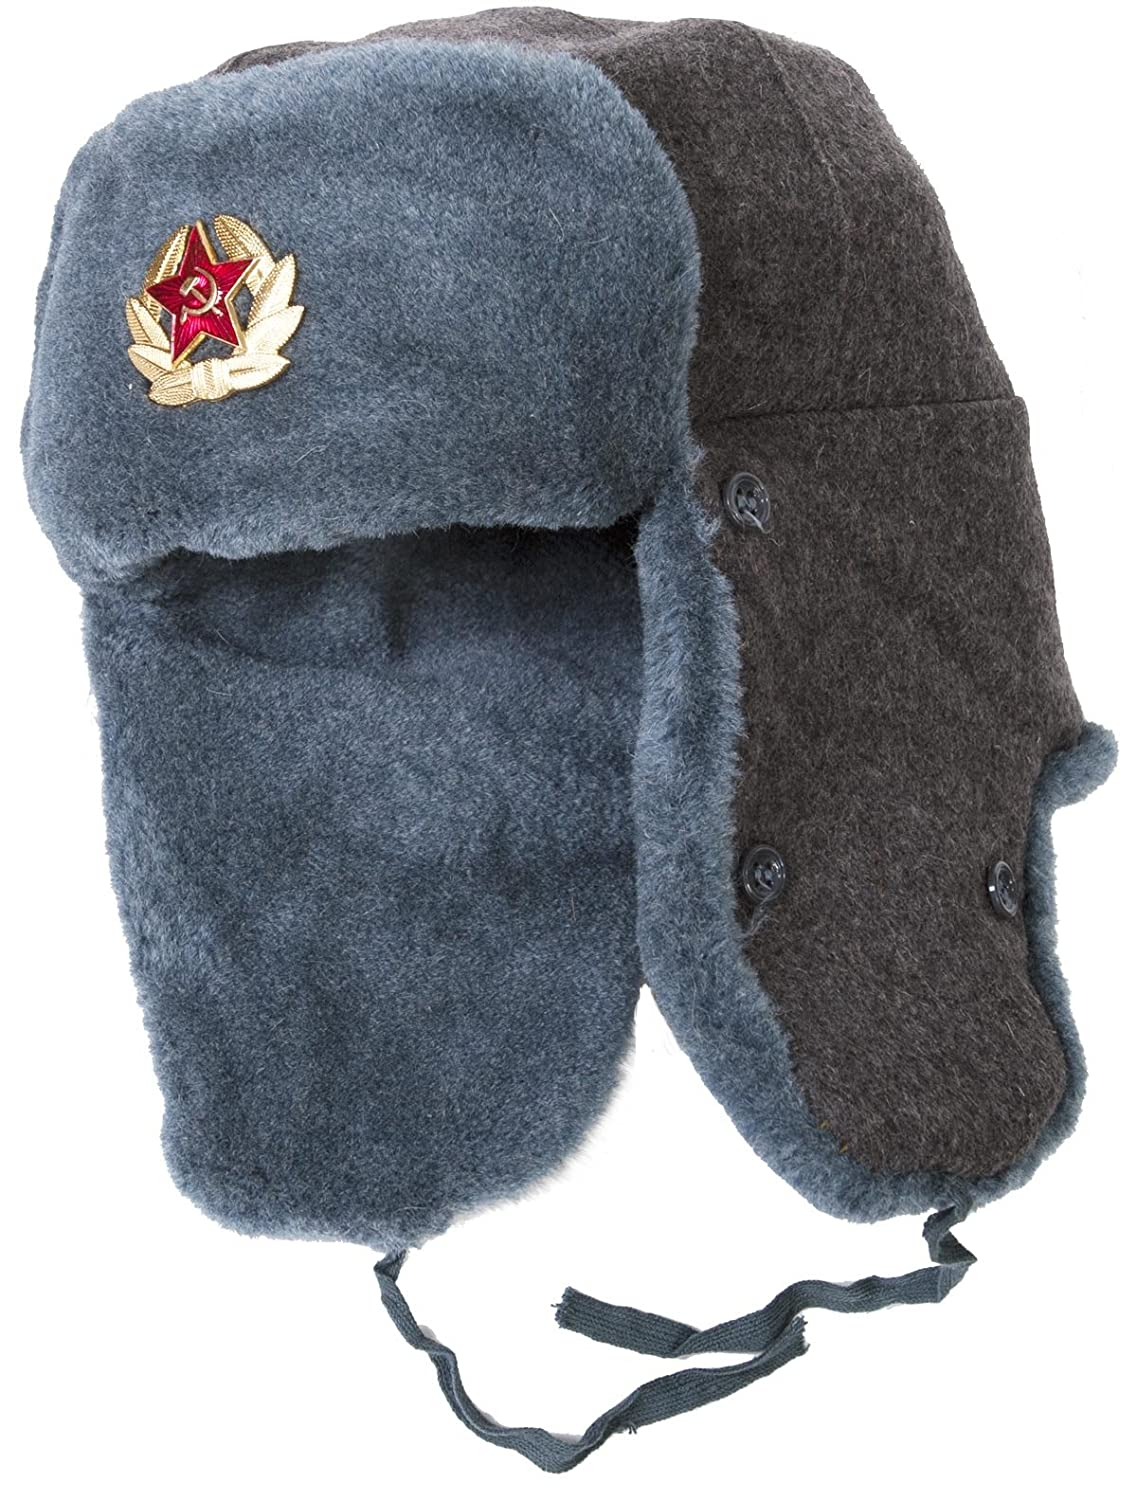 TEPEM Authentic Russian Army Ushanka Winter Hat-54 9705398abf9